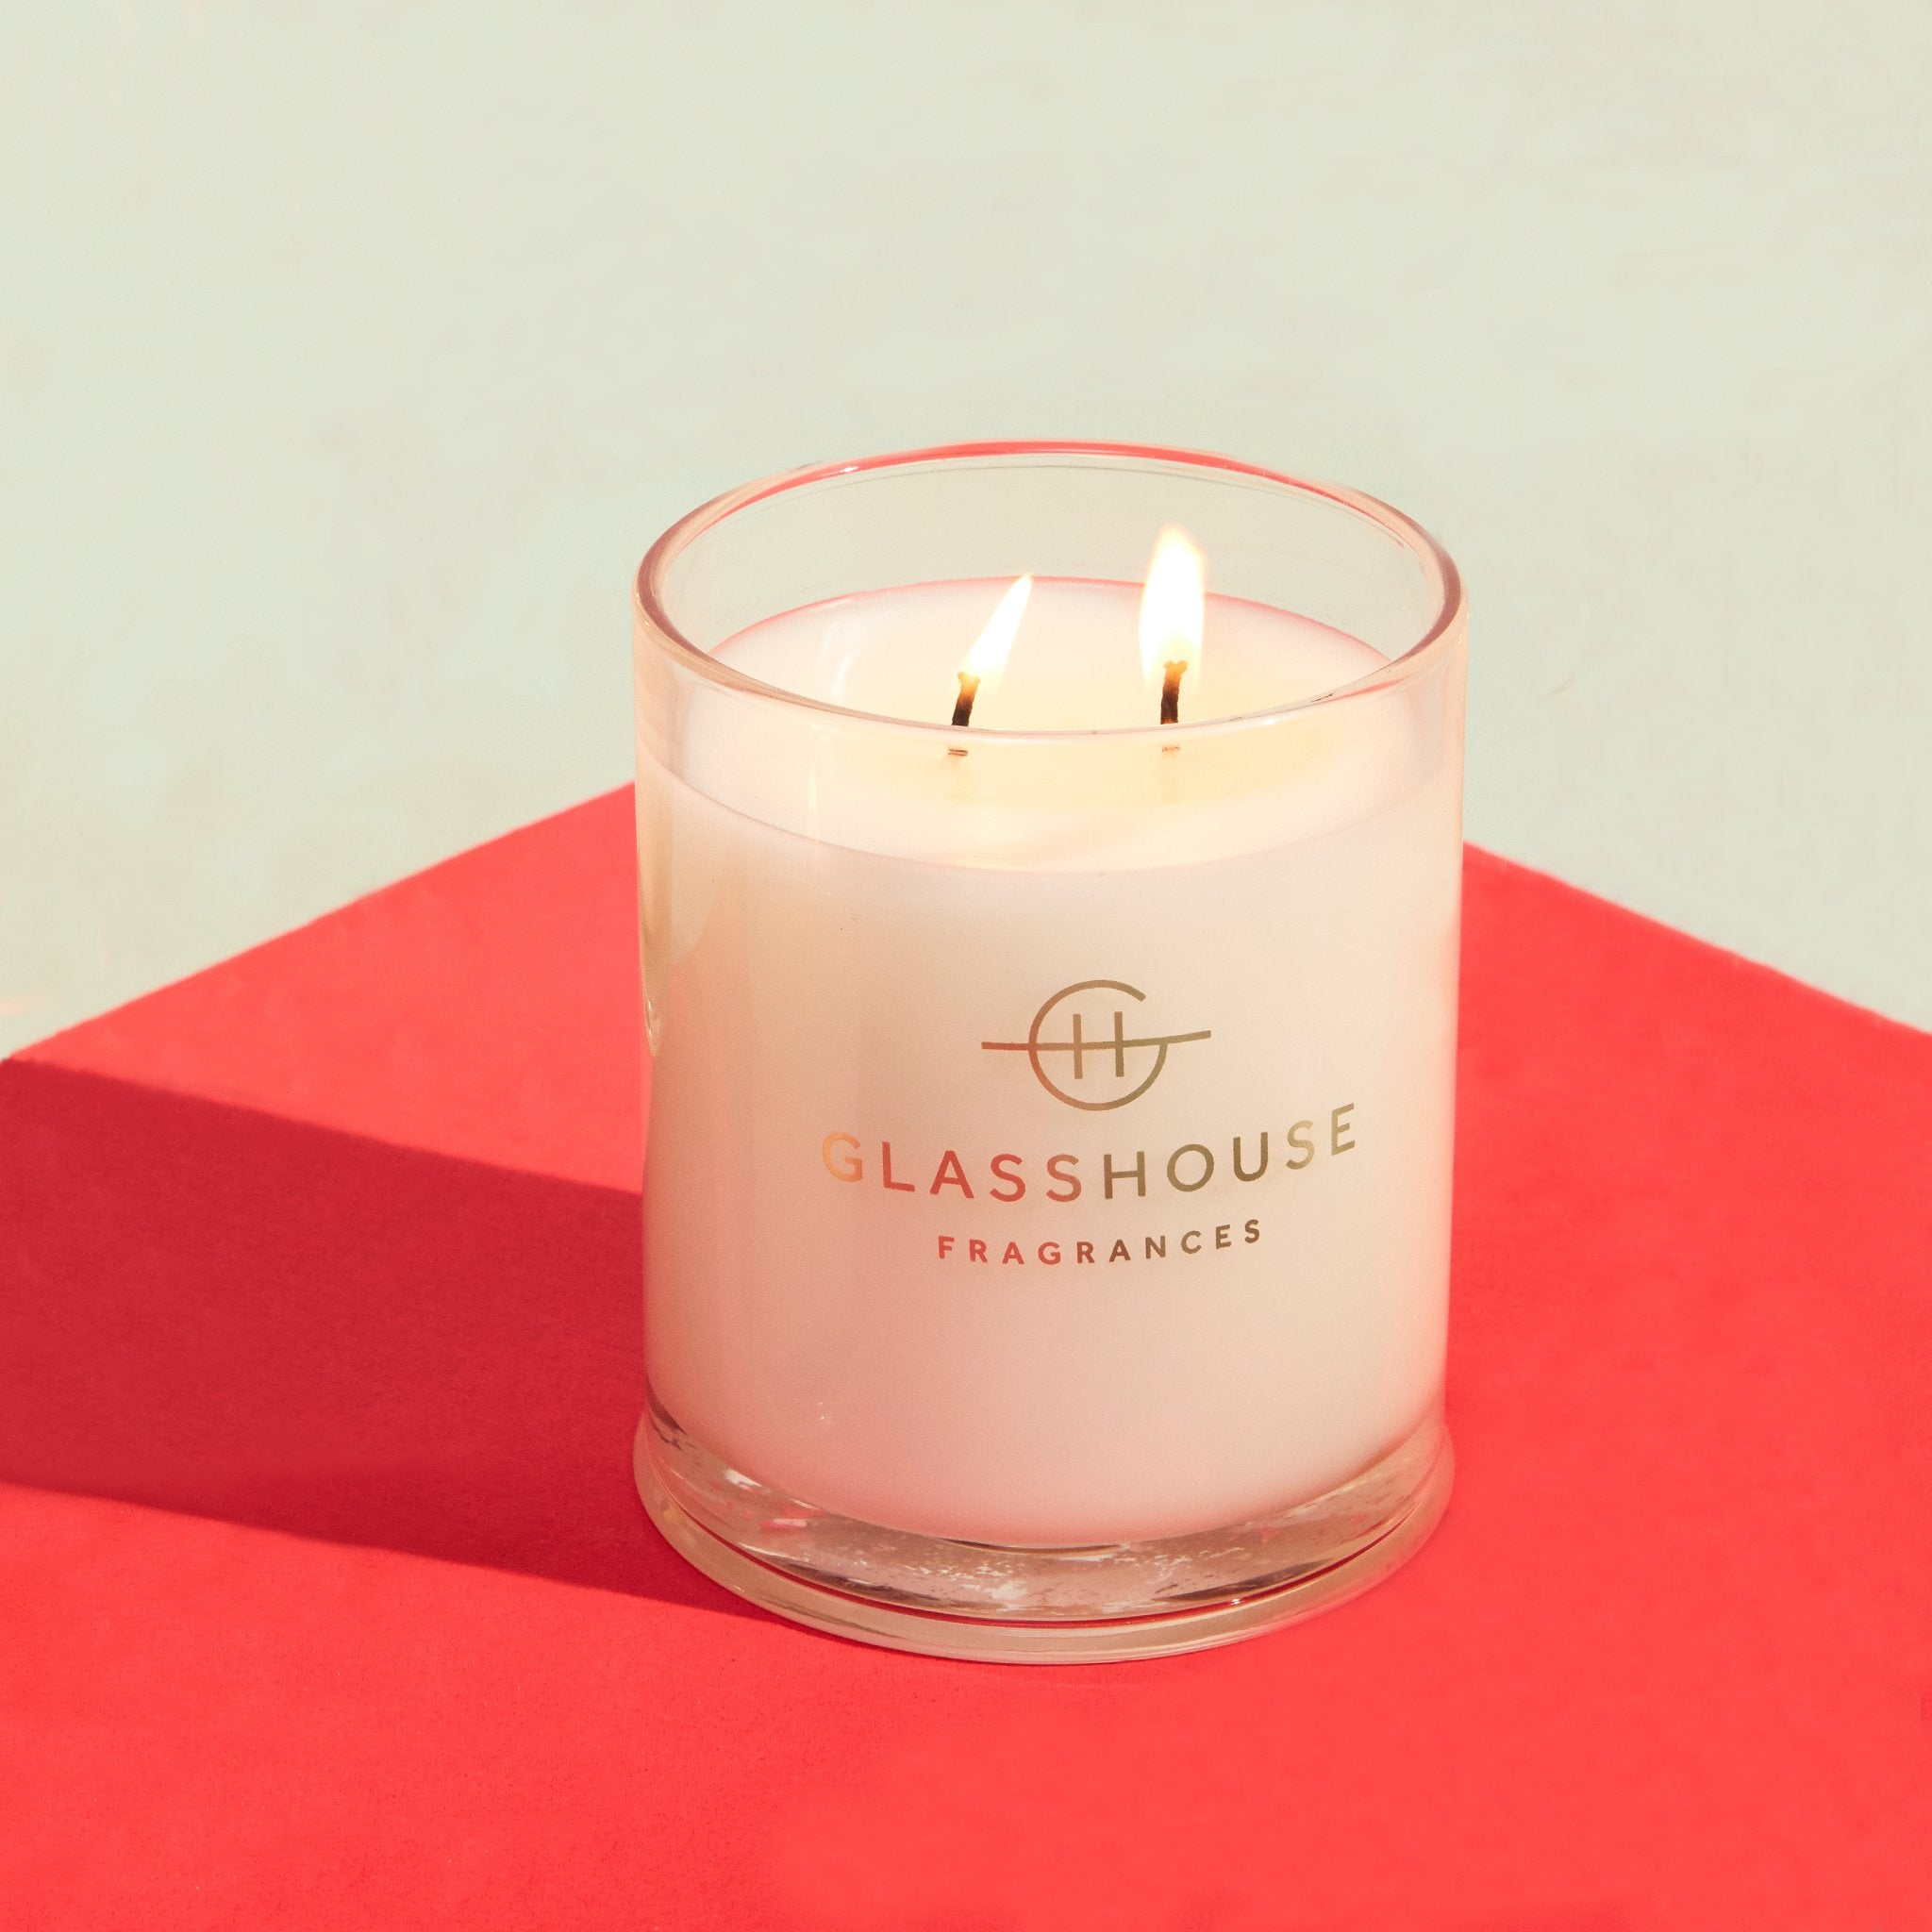 Rendezvous 380g Soy Candle - Glasshouse Fragrances